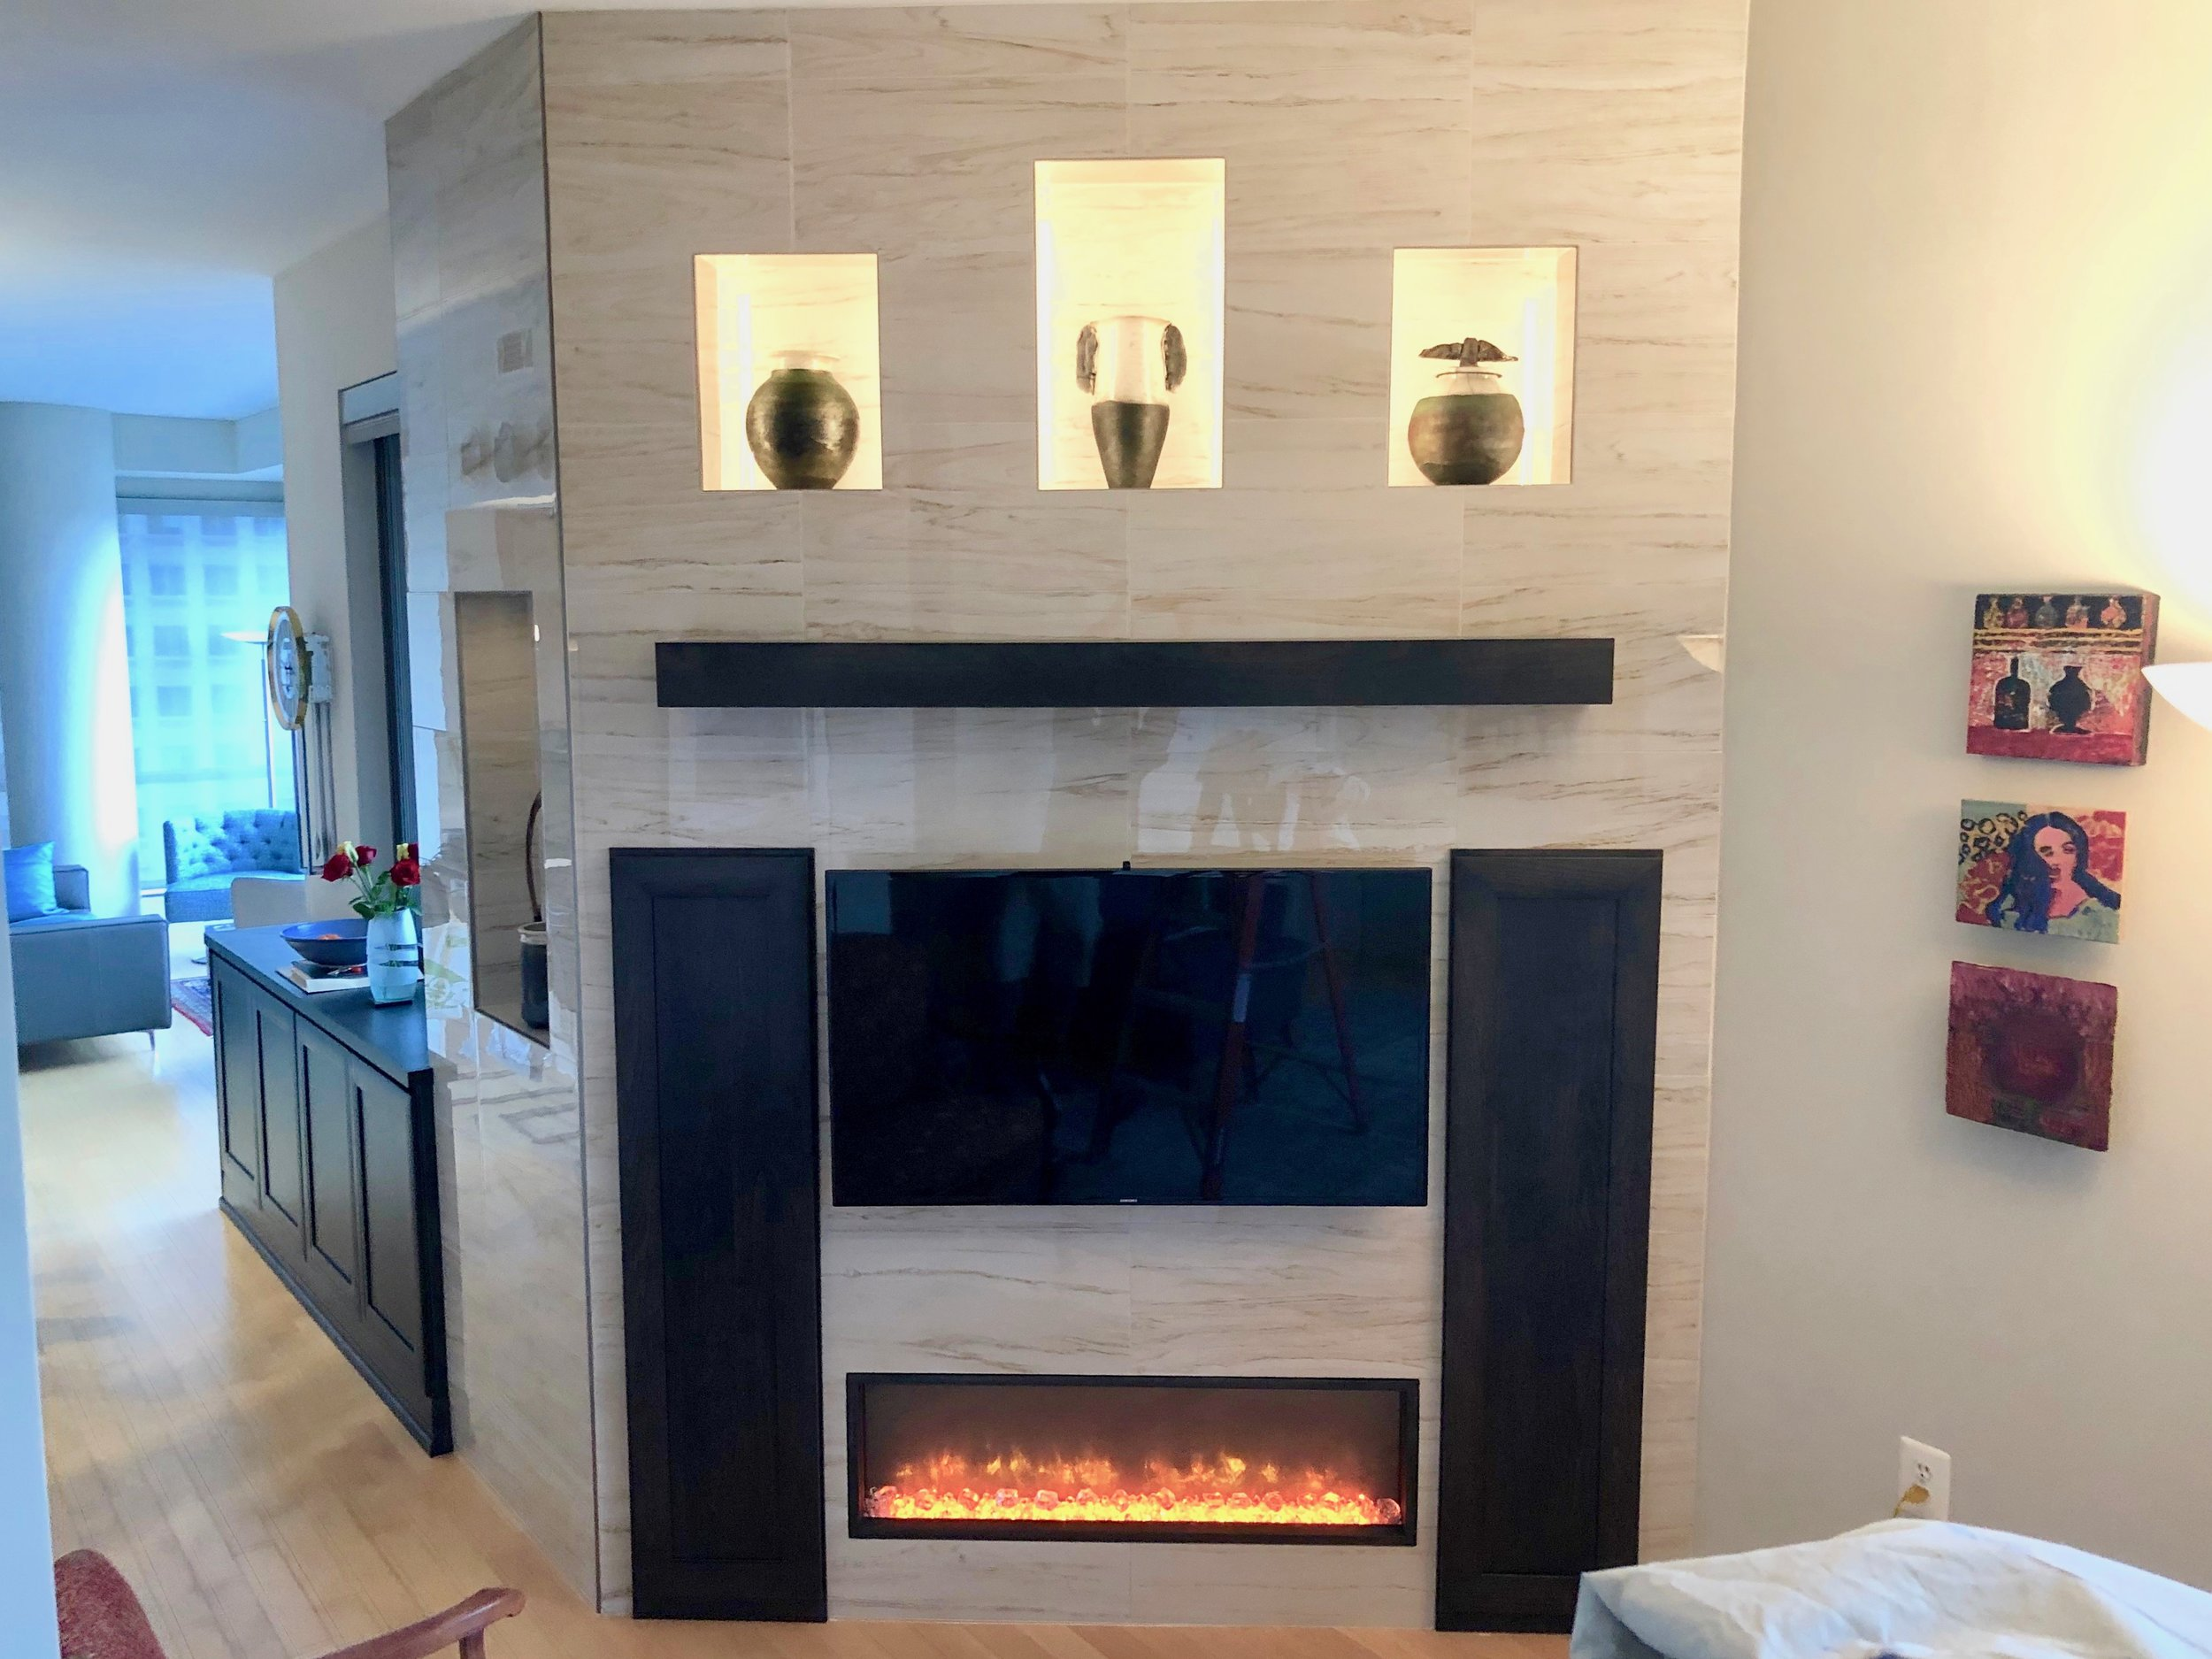 Completed fireplace unit with floating mantle, electric linear fireplace, storage cabinets and three LED lit display niches. To the left you can see the large tiled niche built into the sidewall.